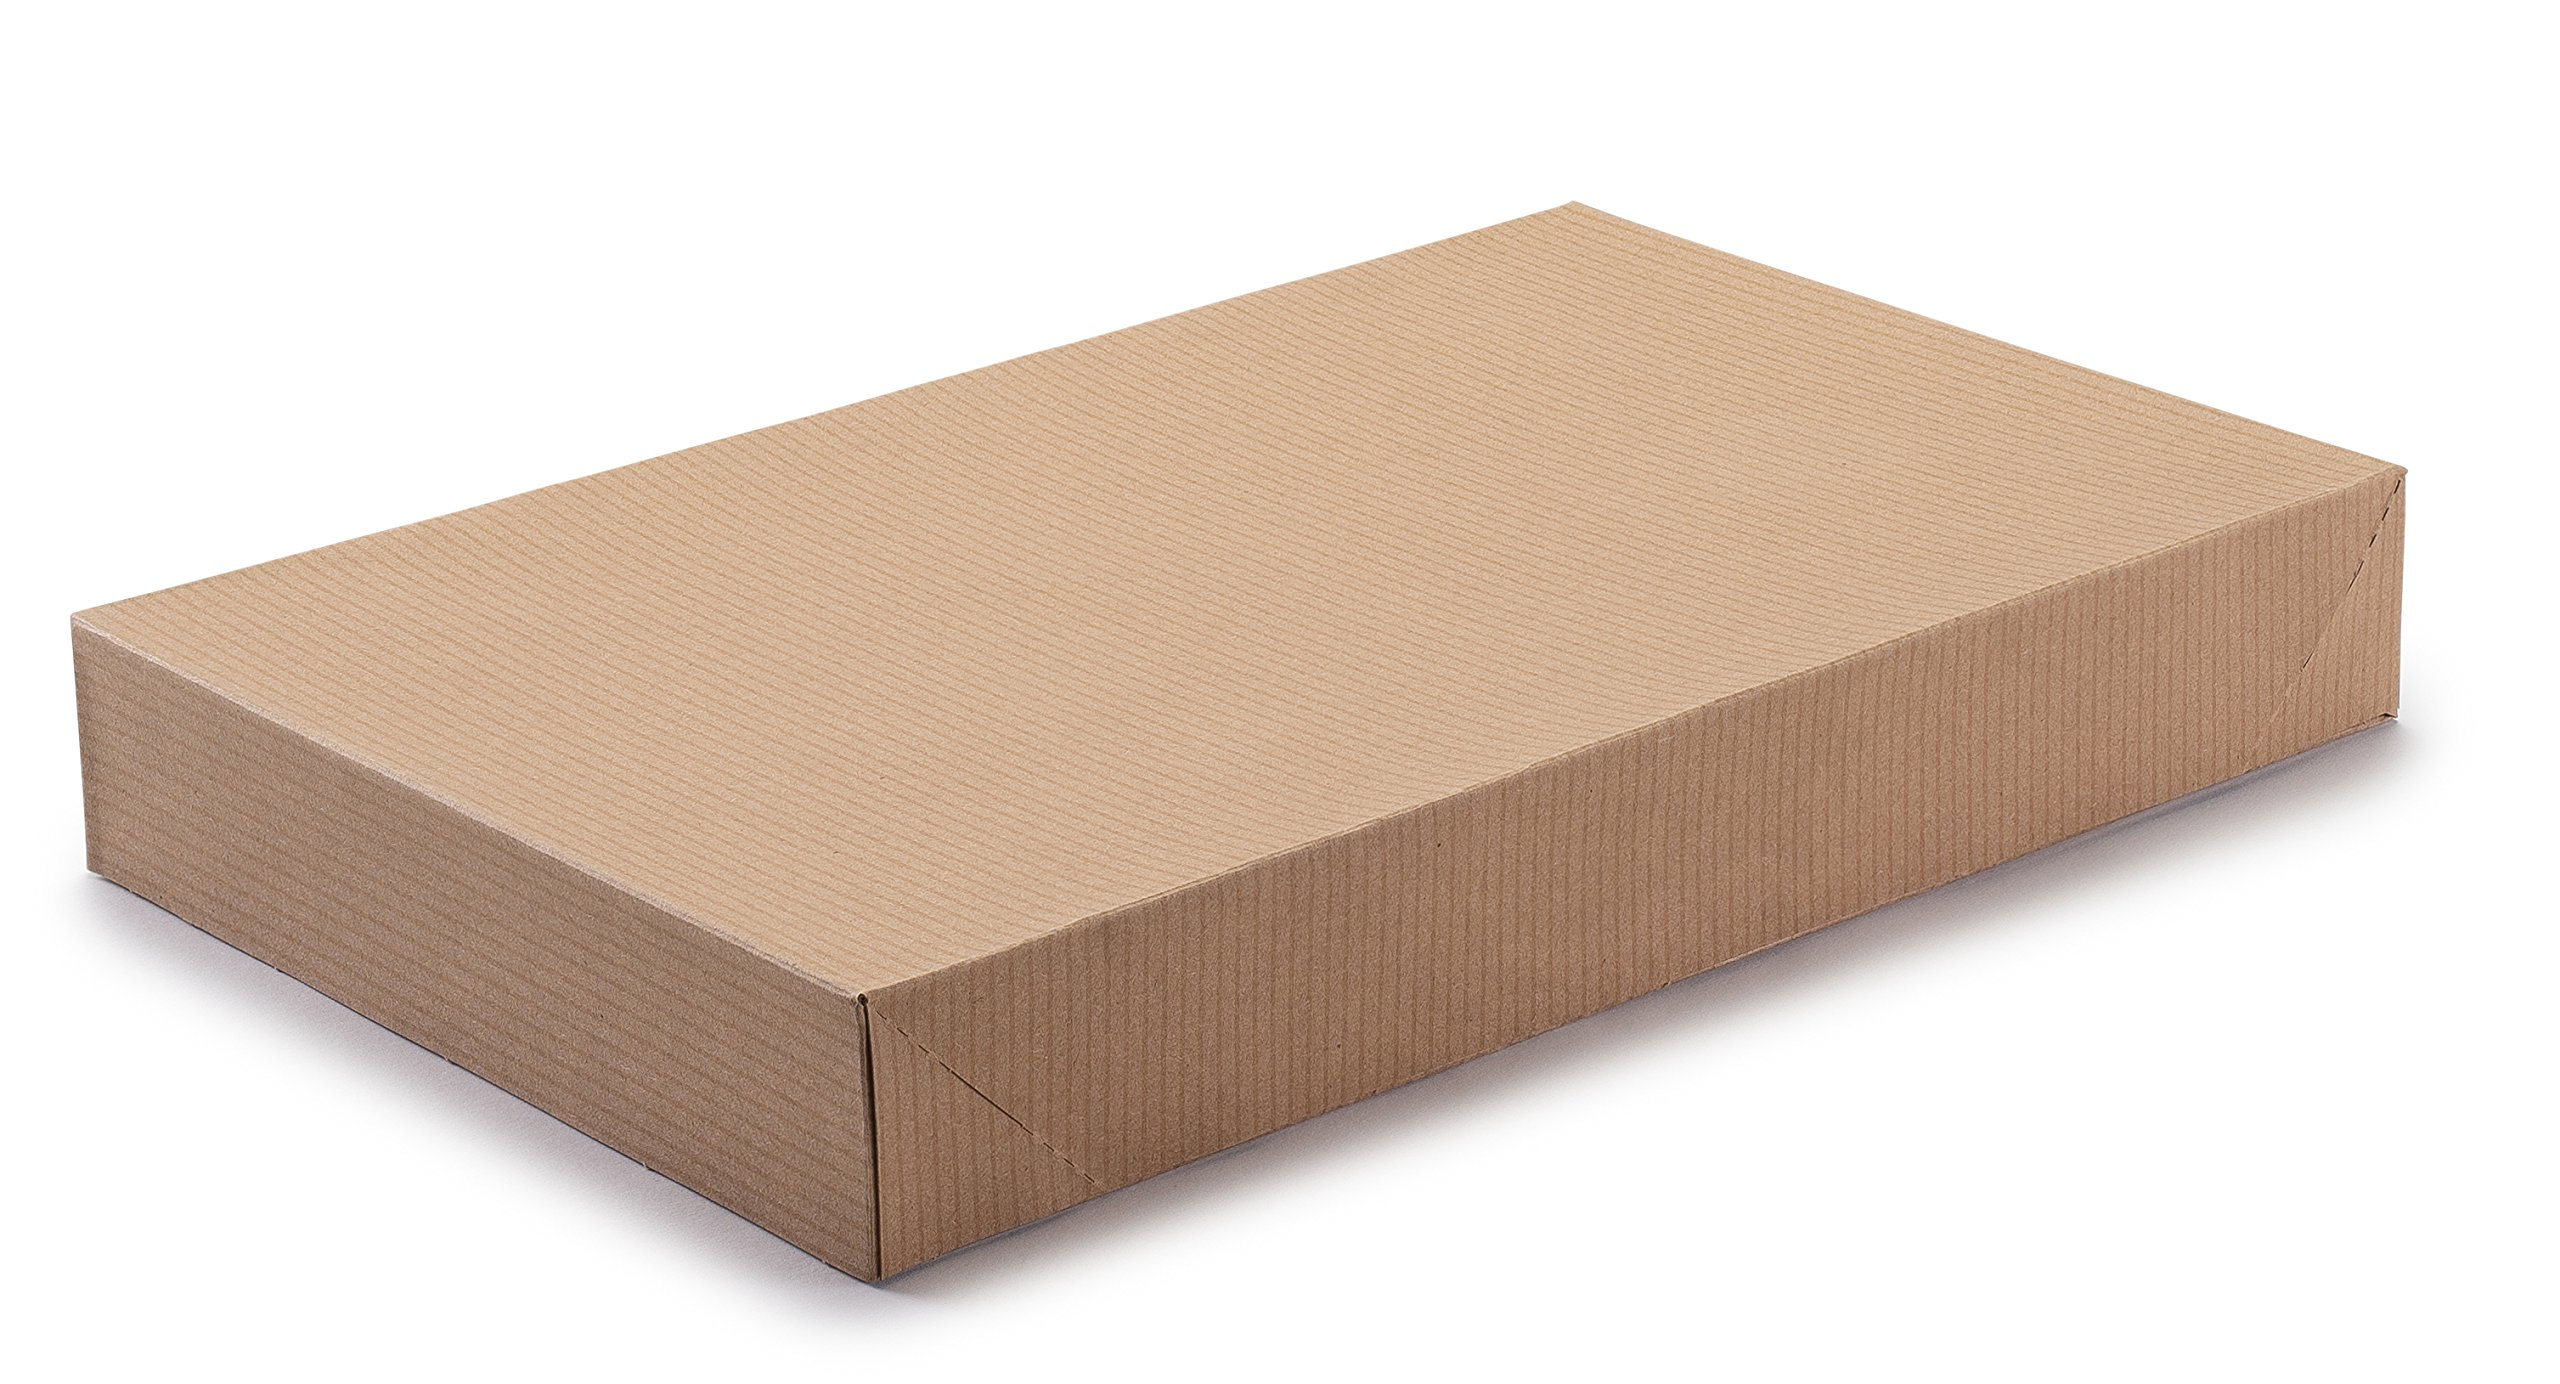 Incredible Packaging – Exceptional Apparel Decorative Gift Box - 15'' x 9.5'' x 2'' - Men Shirt Boxes - Women Top Box - for Apparel and Gifts with lids. (Natural Kraft (Brown), 100 Boxes)